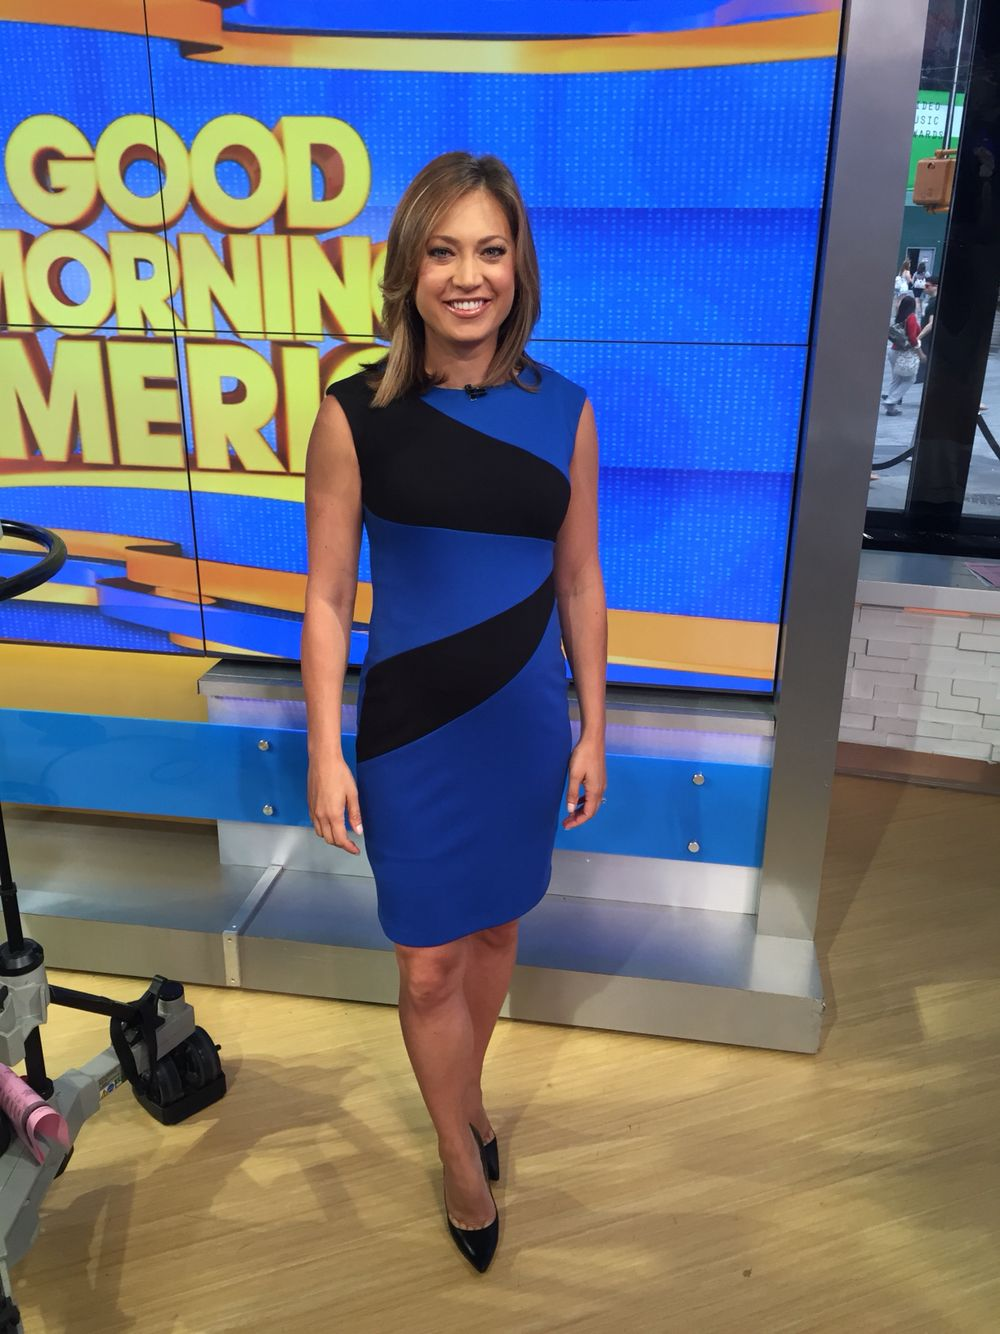 I Bought This Outfit It Looks Amazing On: I Bought This Dress At @calvinklein